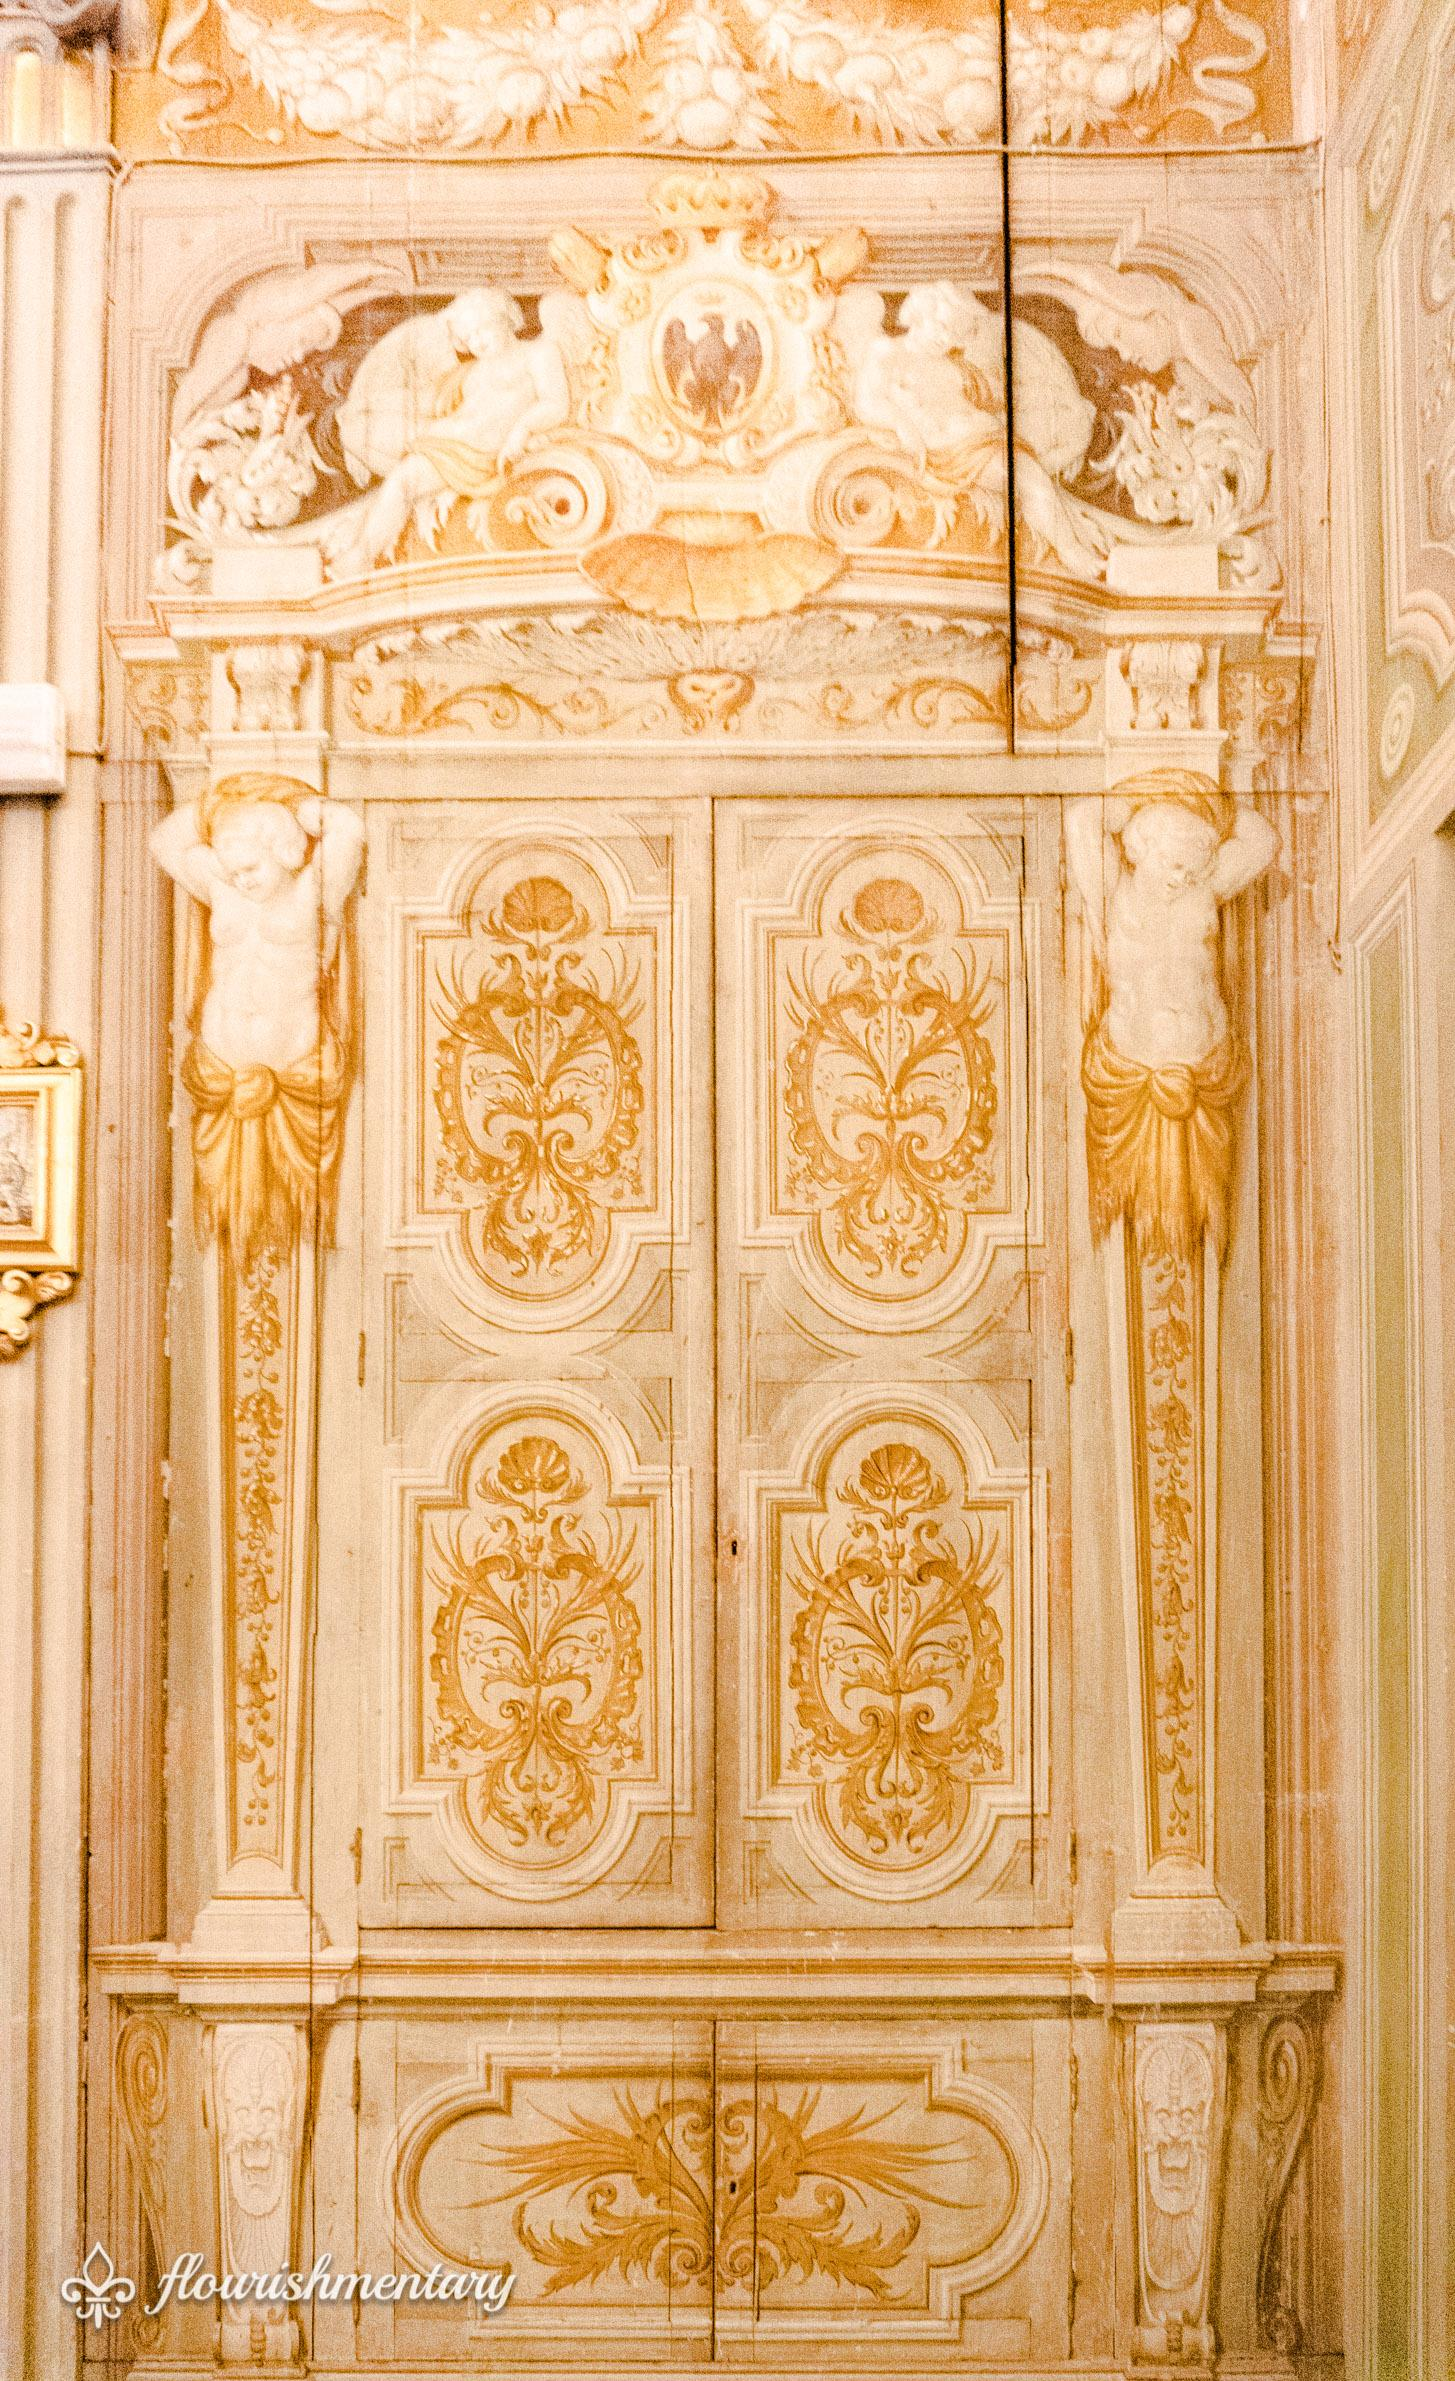 Decorative details of the family chapel Galleria Doria Pamphilj